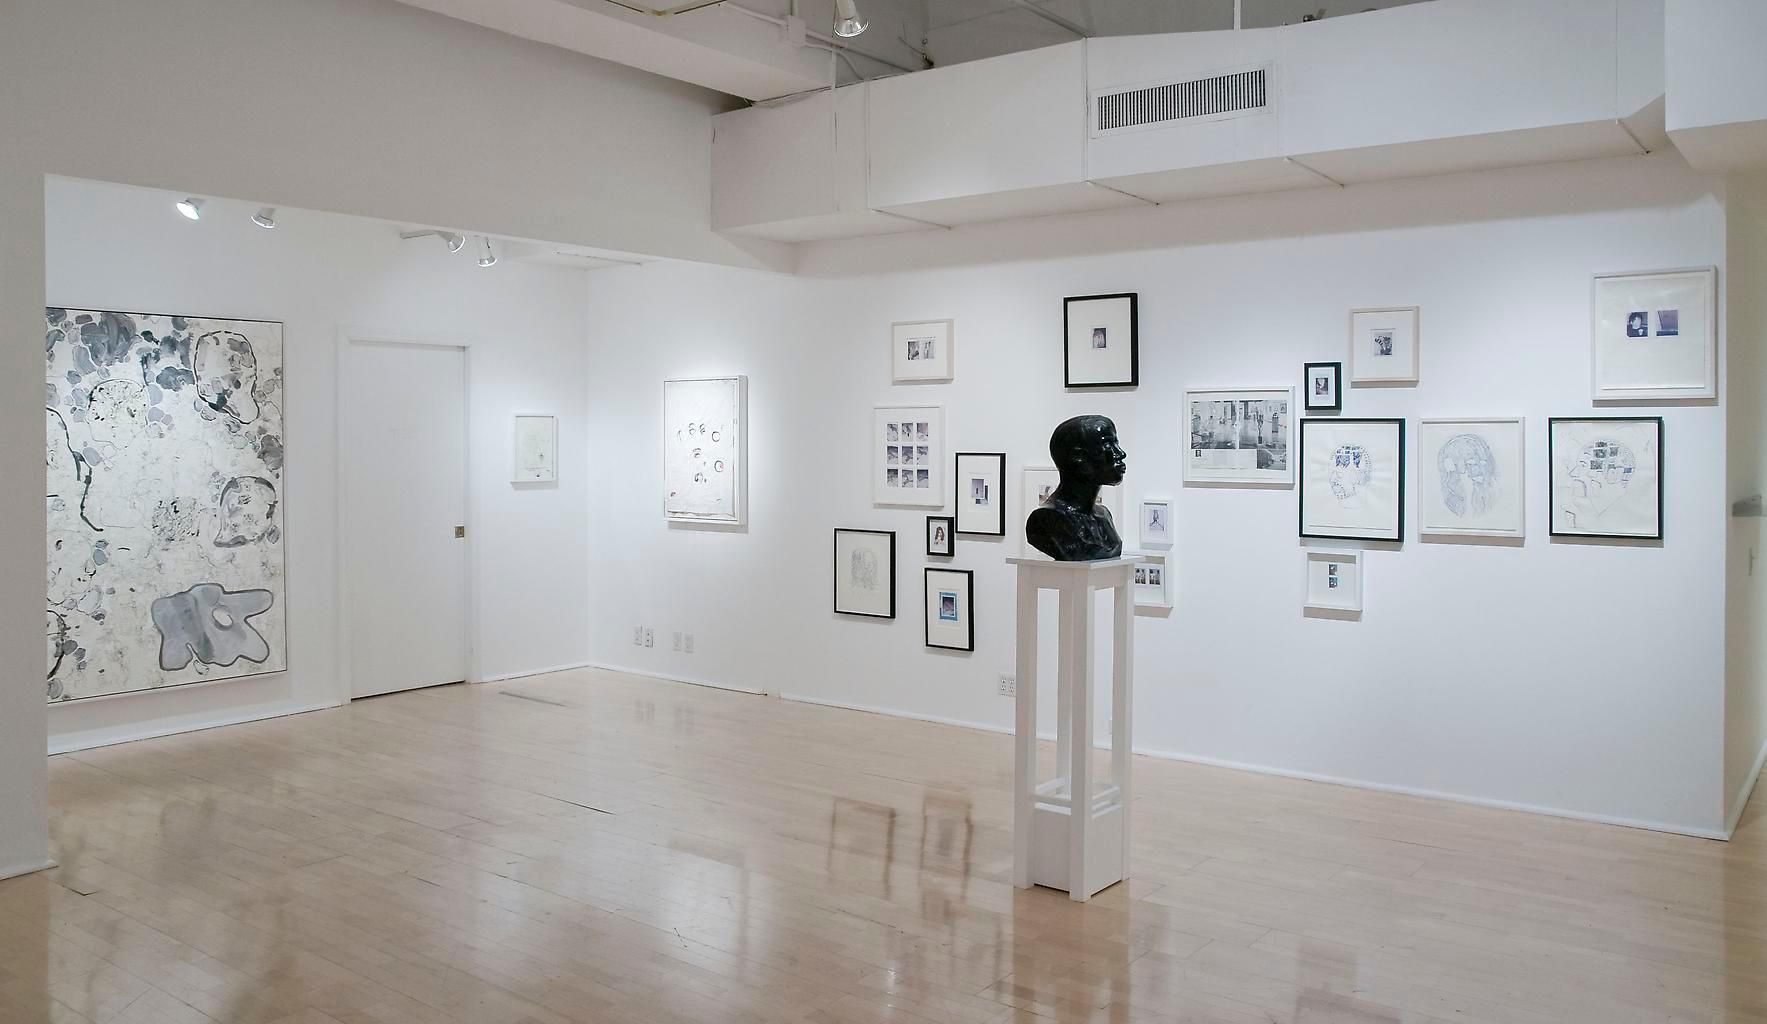 Installation view, Carter, Some Feelings, 1984, 1970, Marc Jancou, New York, May 11 - June 29, 2013